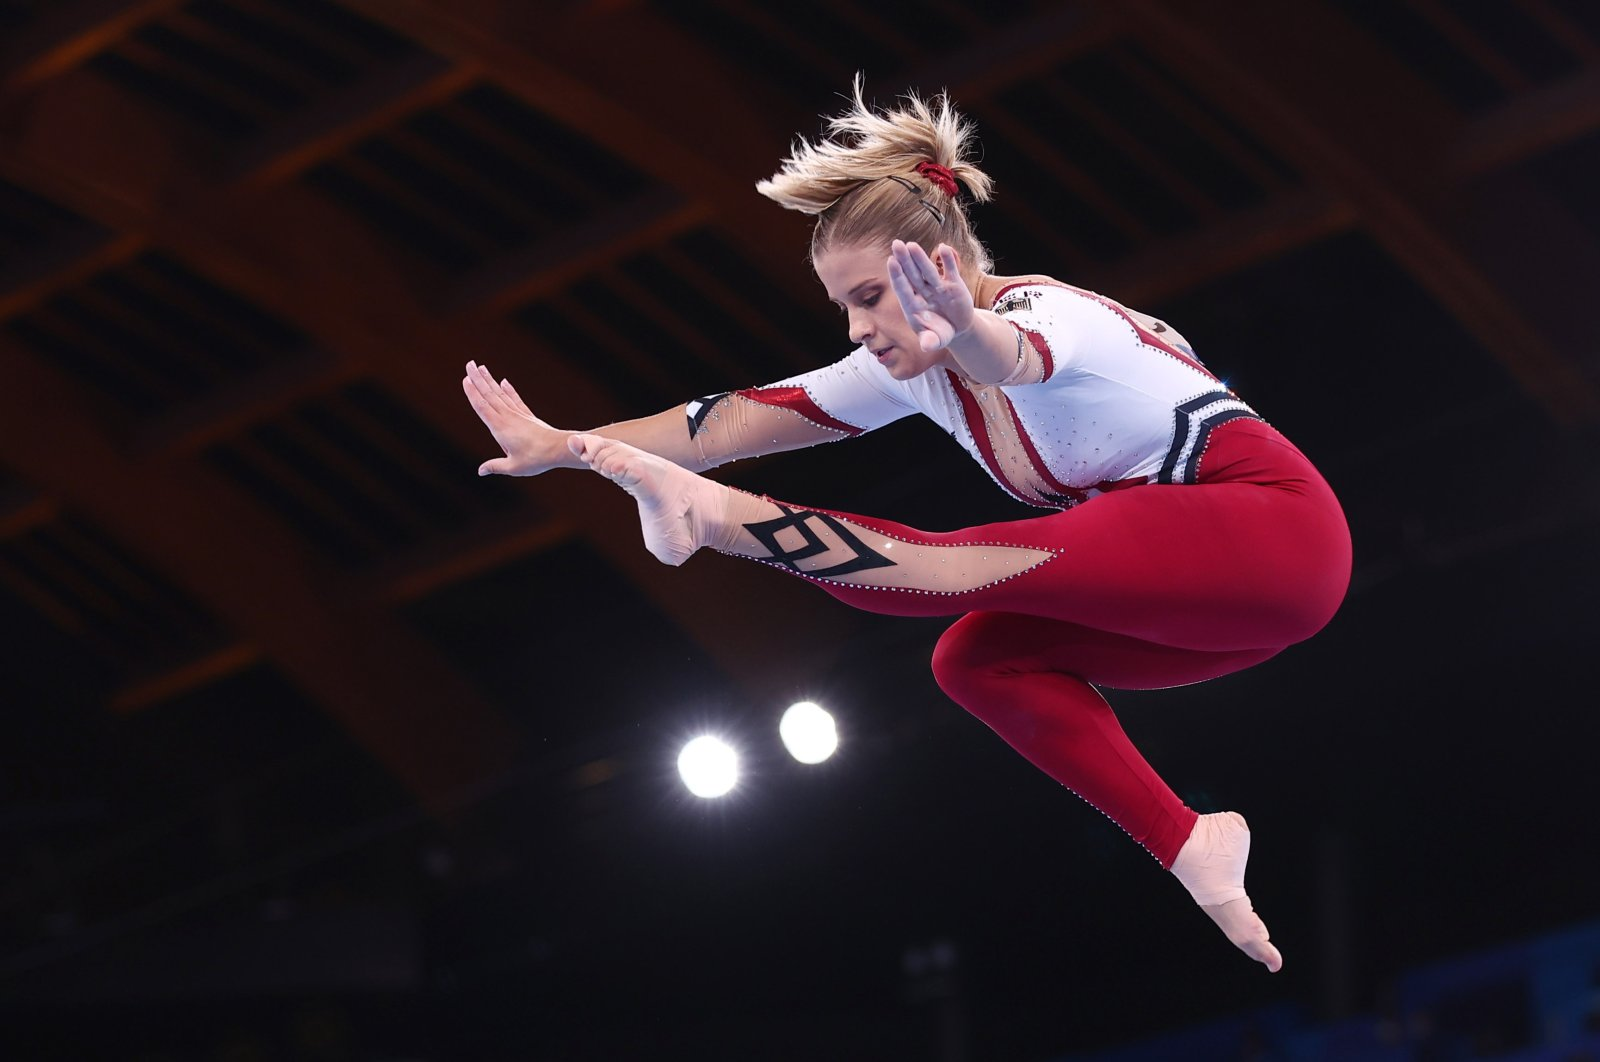 Germany's Elisabeth Seitz in action on the balance beam at the Tokyo 2020 Olympics at theAriake Gymnastics Centre, Tokyo, Japan, July 25, 2021.